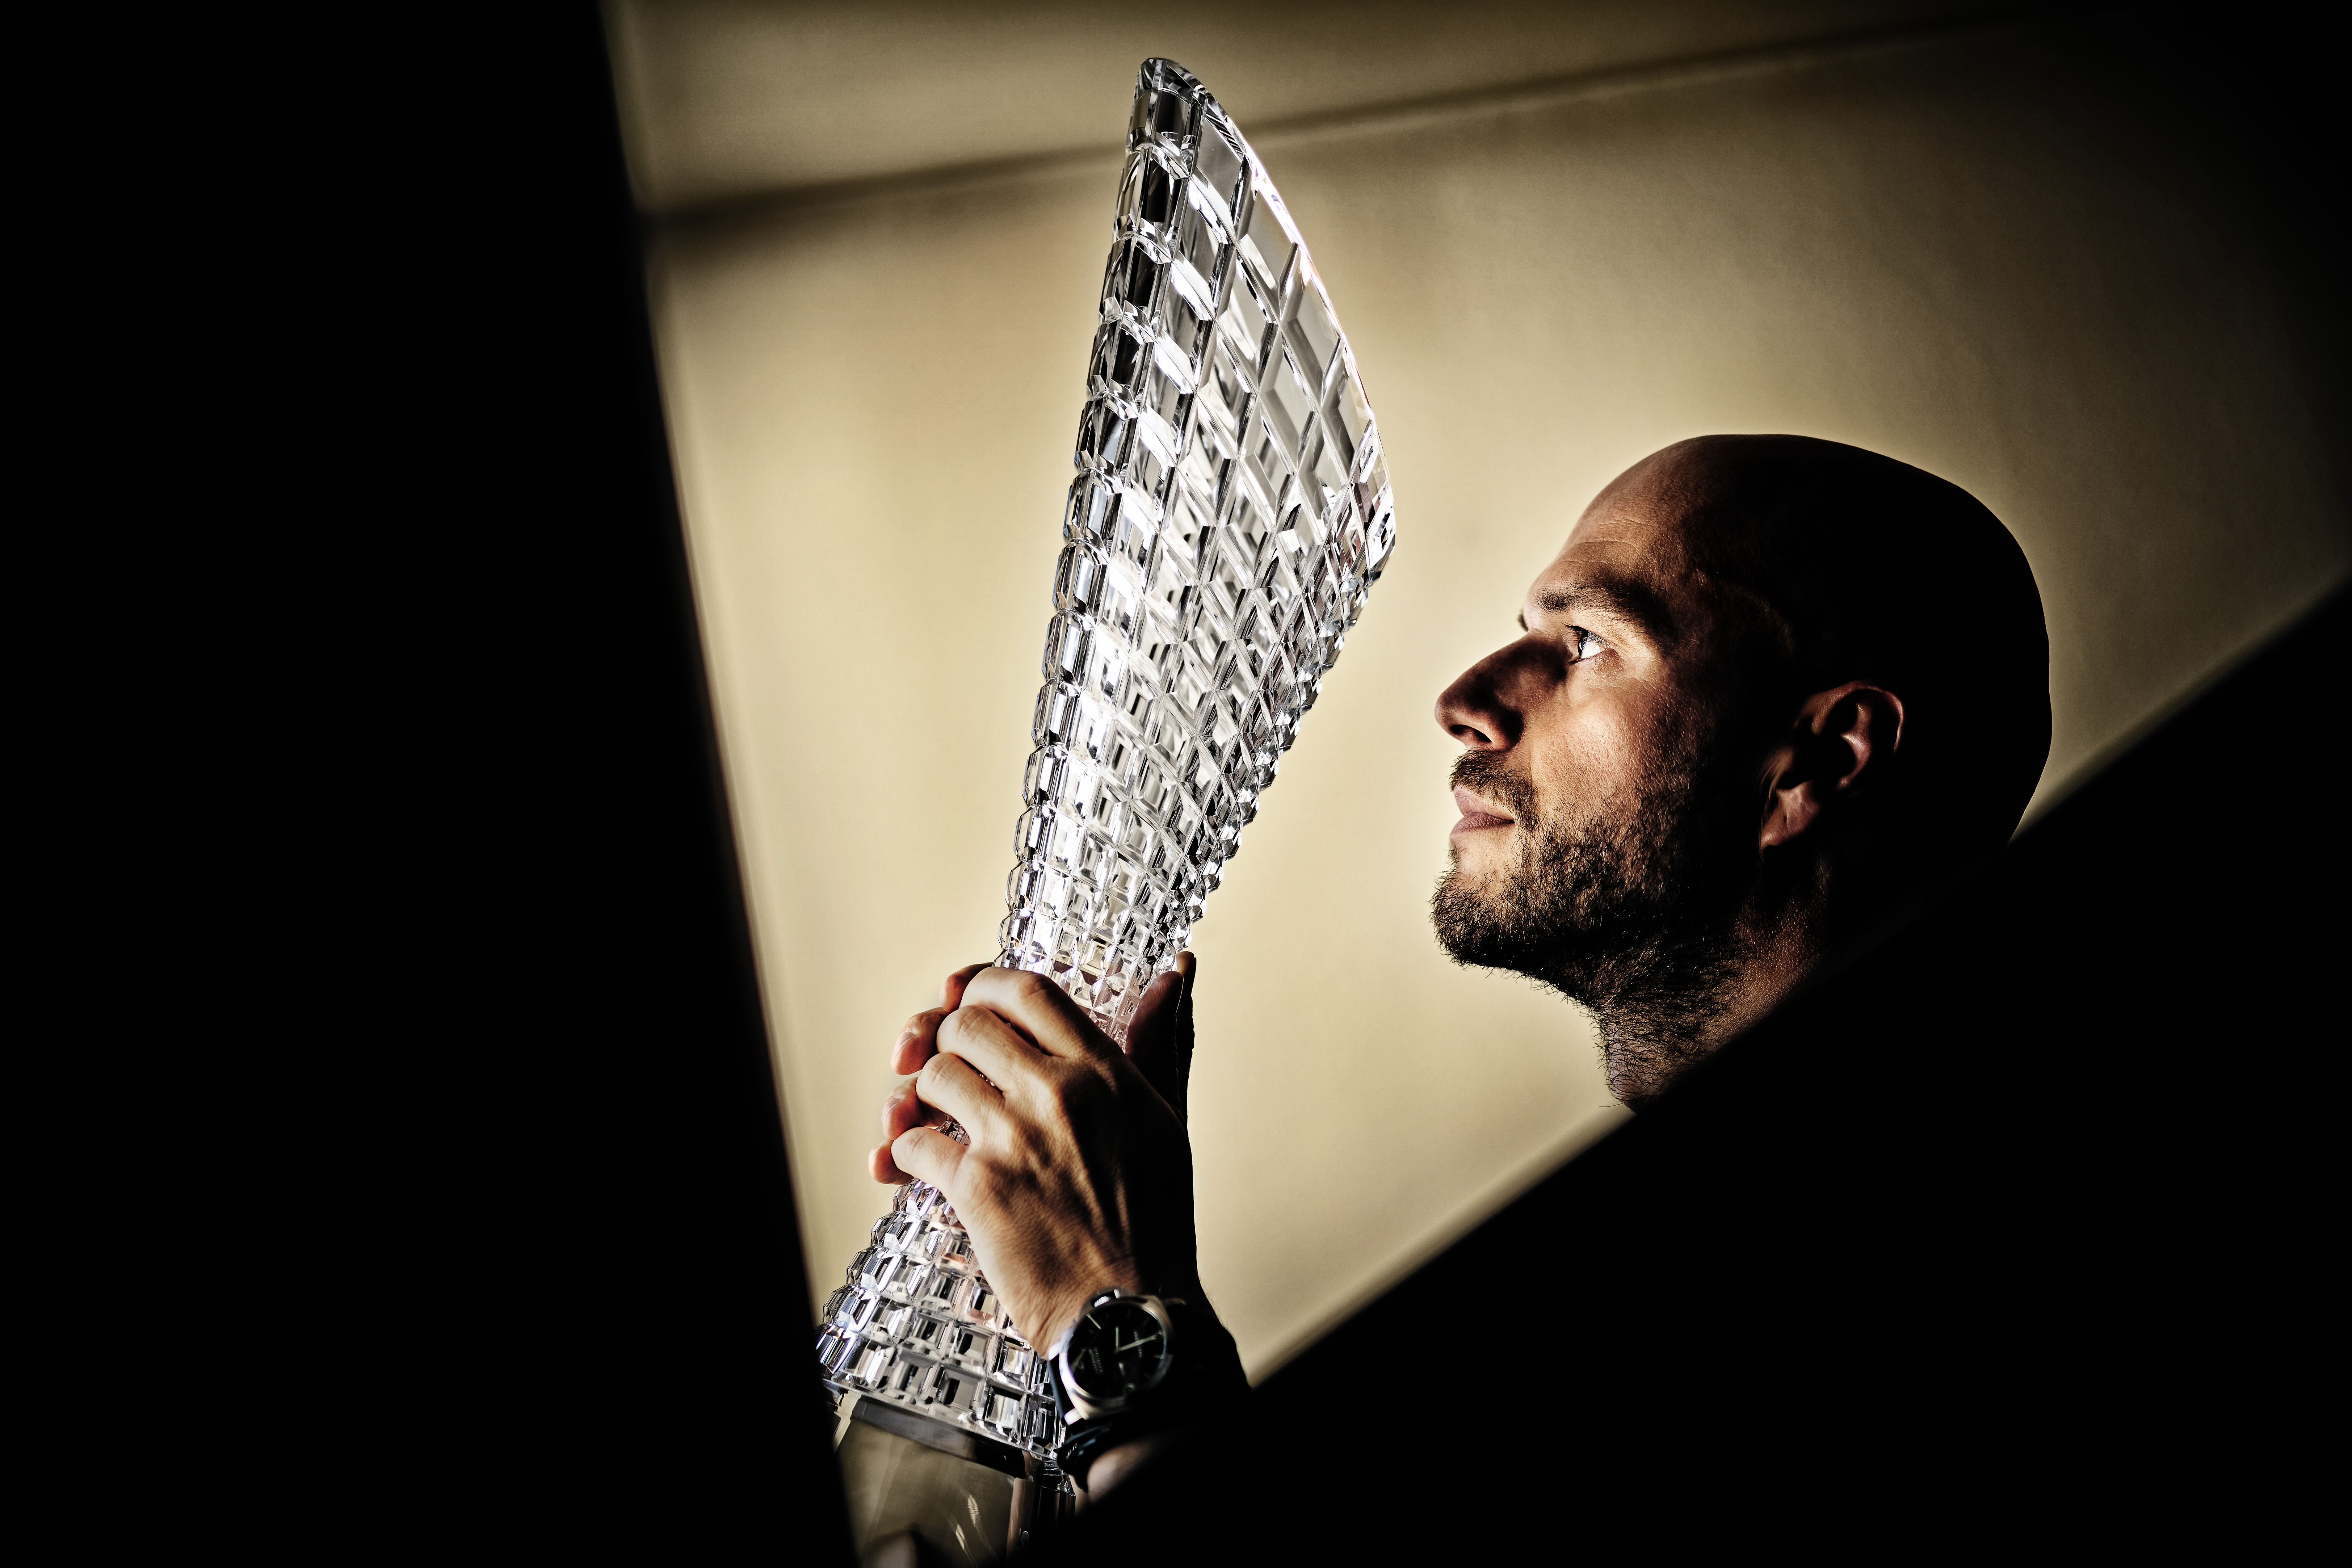 SKODA Design creates trophies for Tour de France winners for 10th time - Image 1